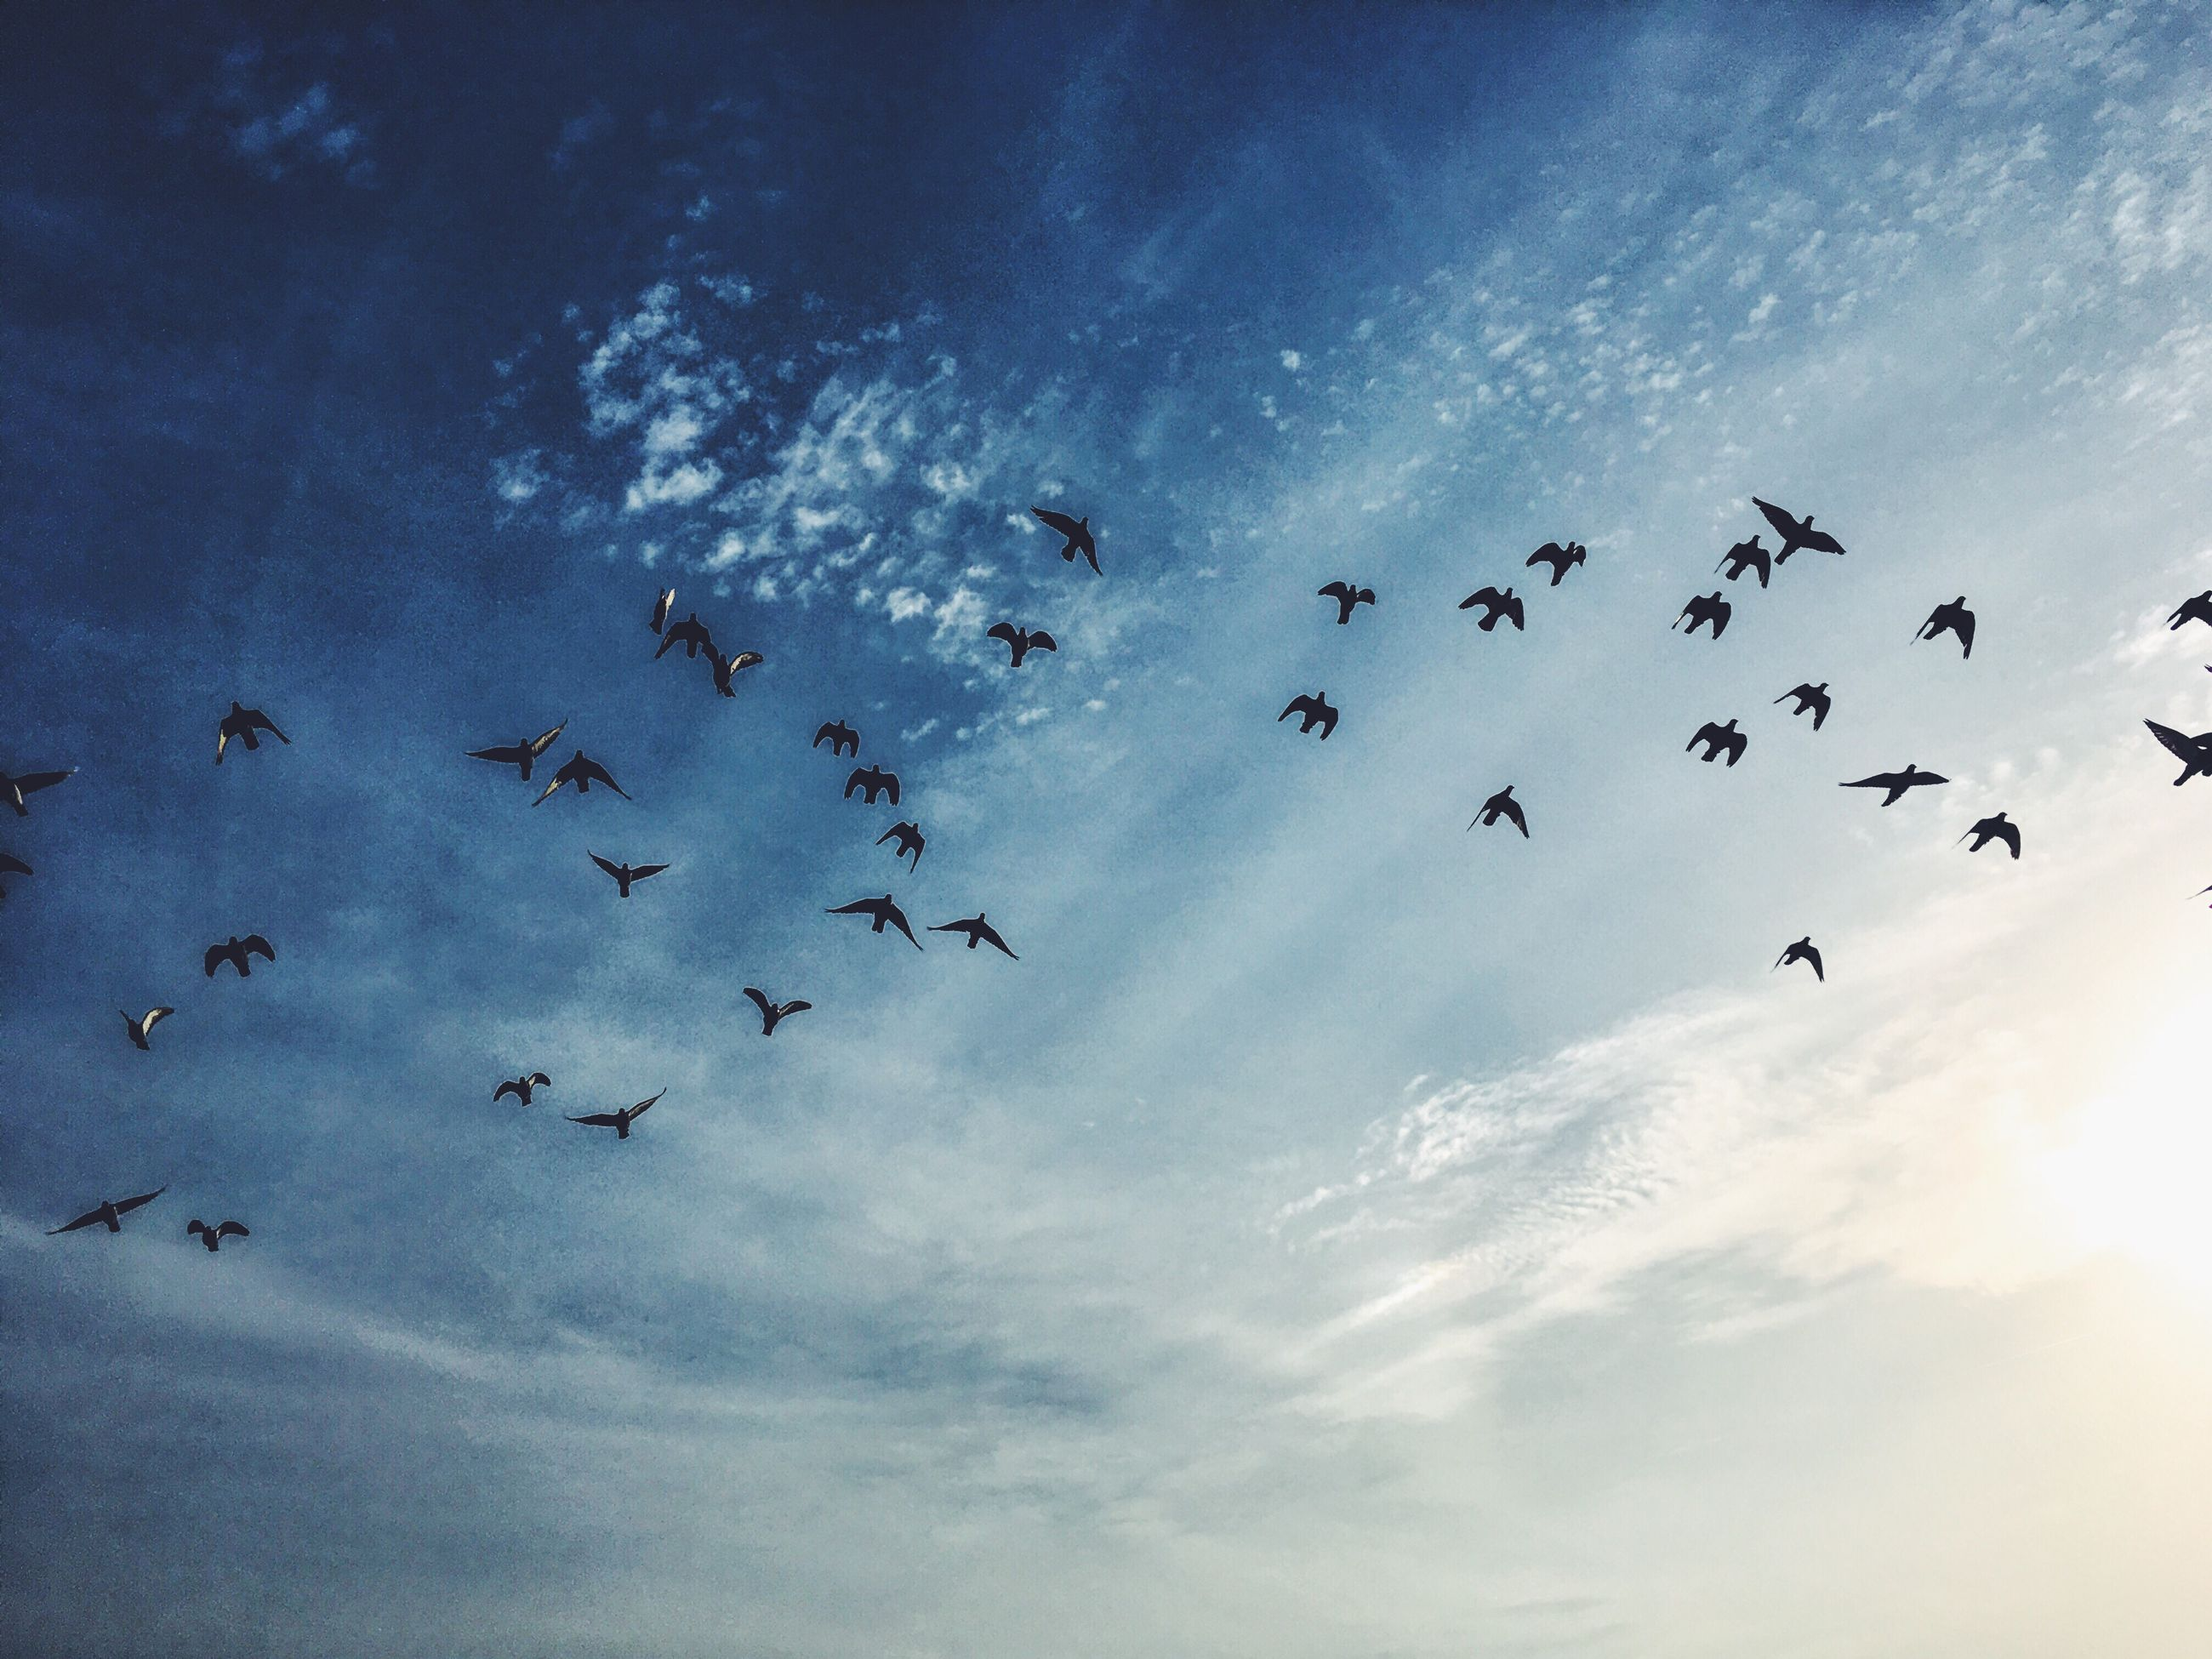 flying, large group of animals, animal themes, sky, bird, flock of birds, animals in the wild, animal wildlife, mid-air, cloud - sky, nature, beauty in nature, no people, togetherness, outdoors, day